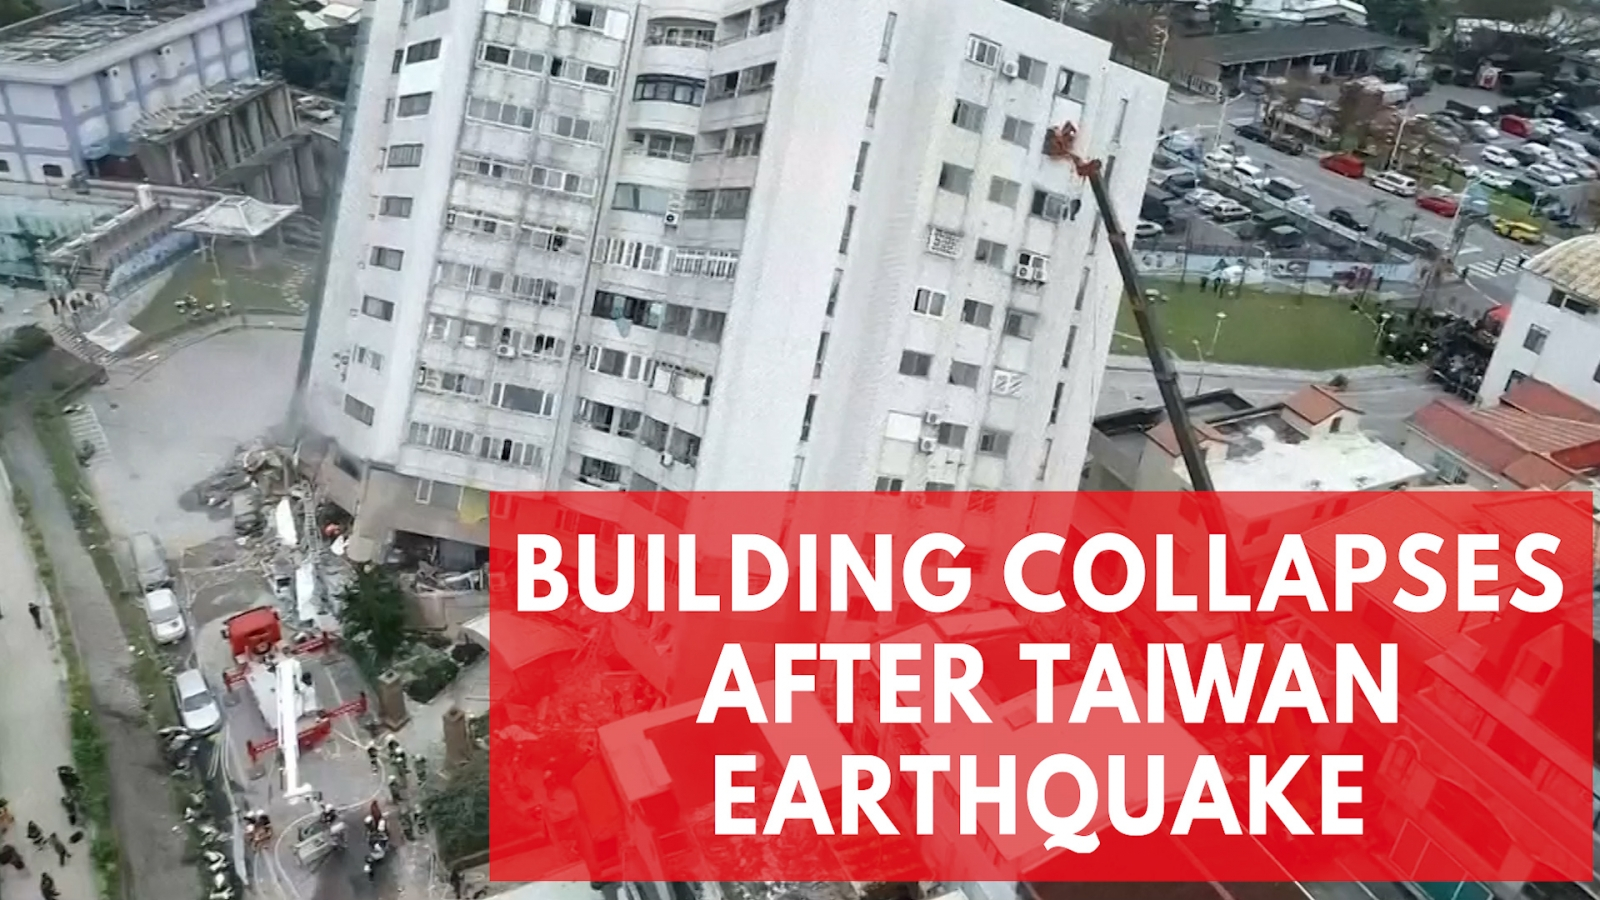 drone-footage-shows-collapsed-residential-building-after-taiwan-earthquake